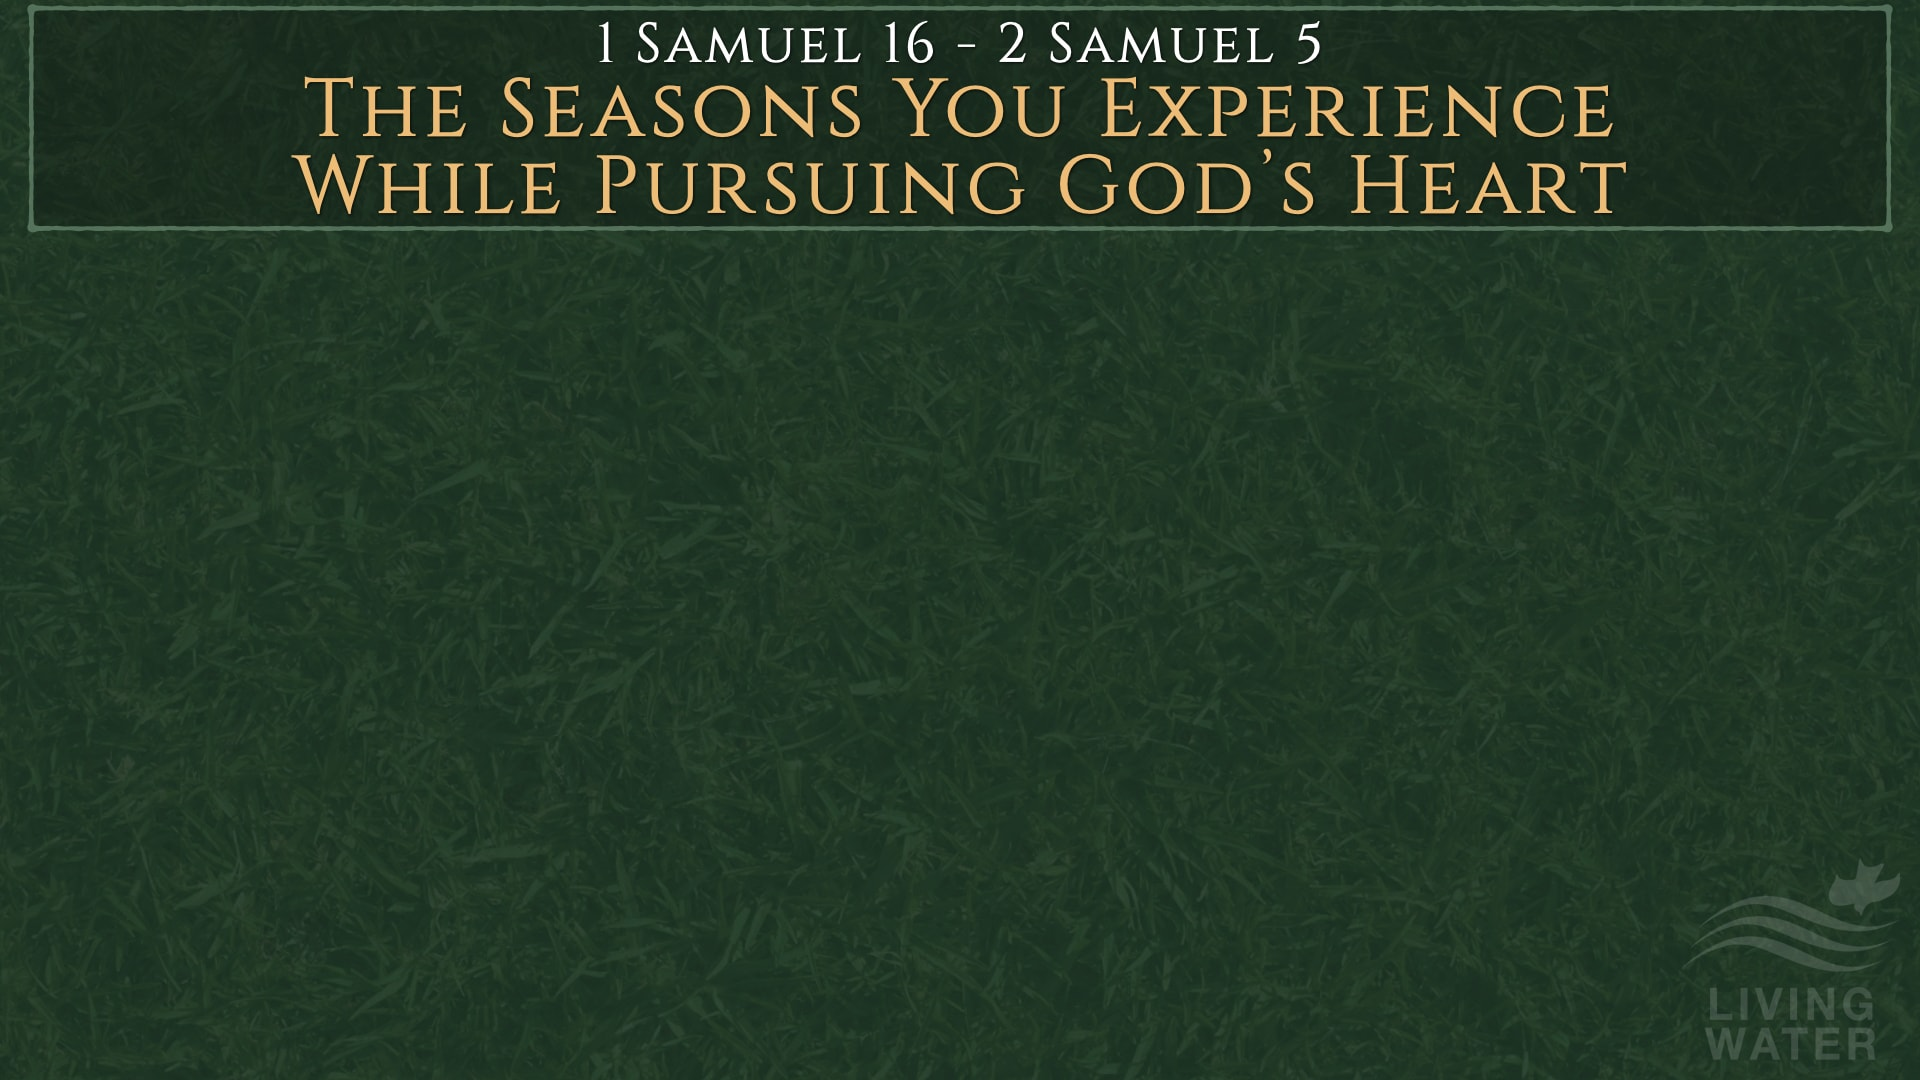 1 Samuel 16 – 2 Samuel 5, The Seasons You Experience